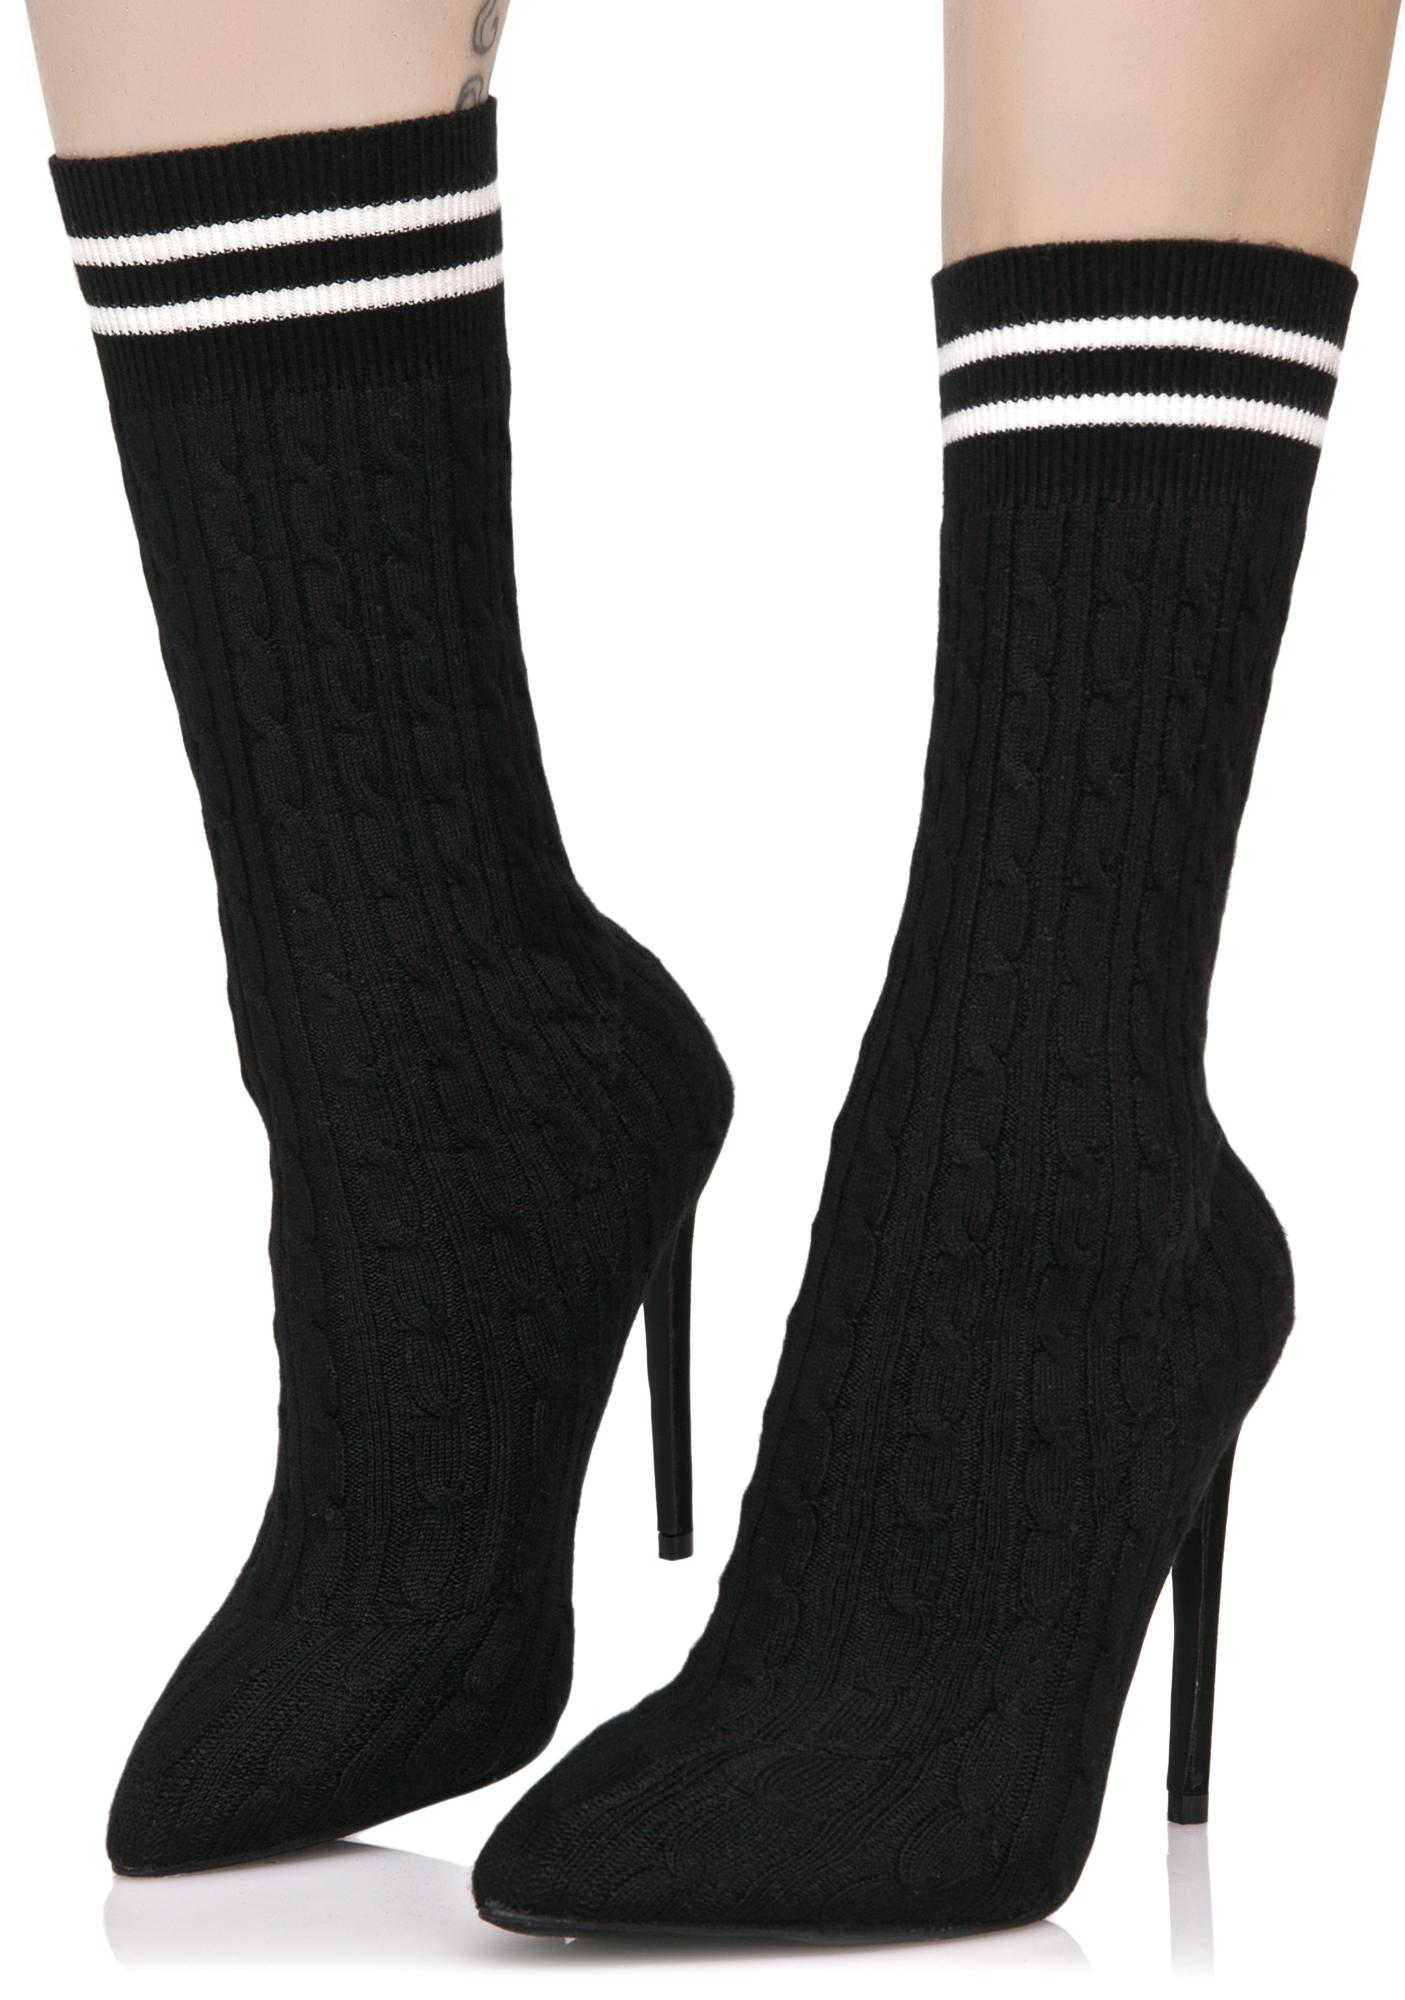 Sock Shoes For Women